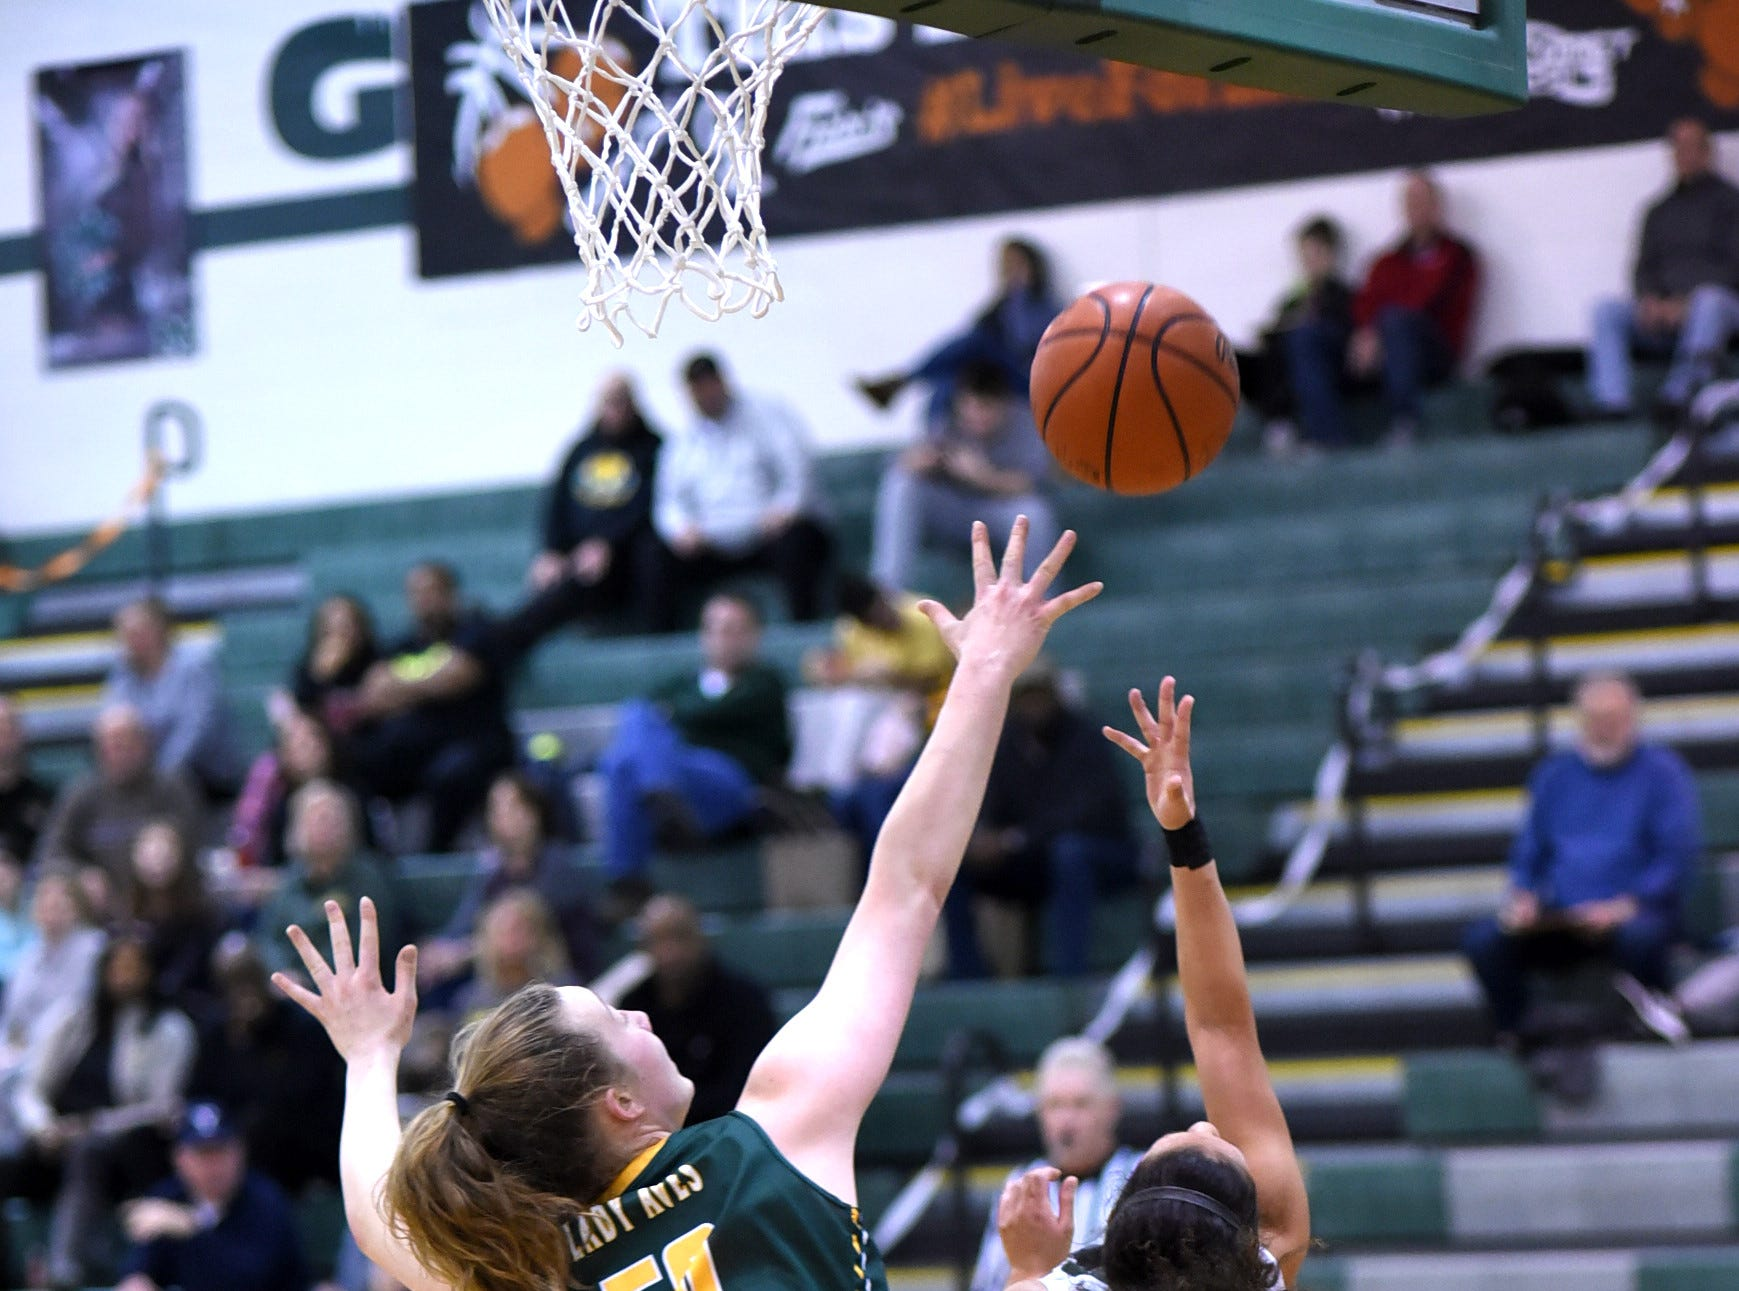 Mason's Sade Tucker (3) drops in a backward, over-the-head layup for the Comets as Sycamore's Brianna Counts (50) defends in the Third Annual Live for Liz Fight For Cancer Free Kids Basketball Game, Feb. 1, 2019. Mason girls won 47-29.